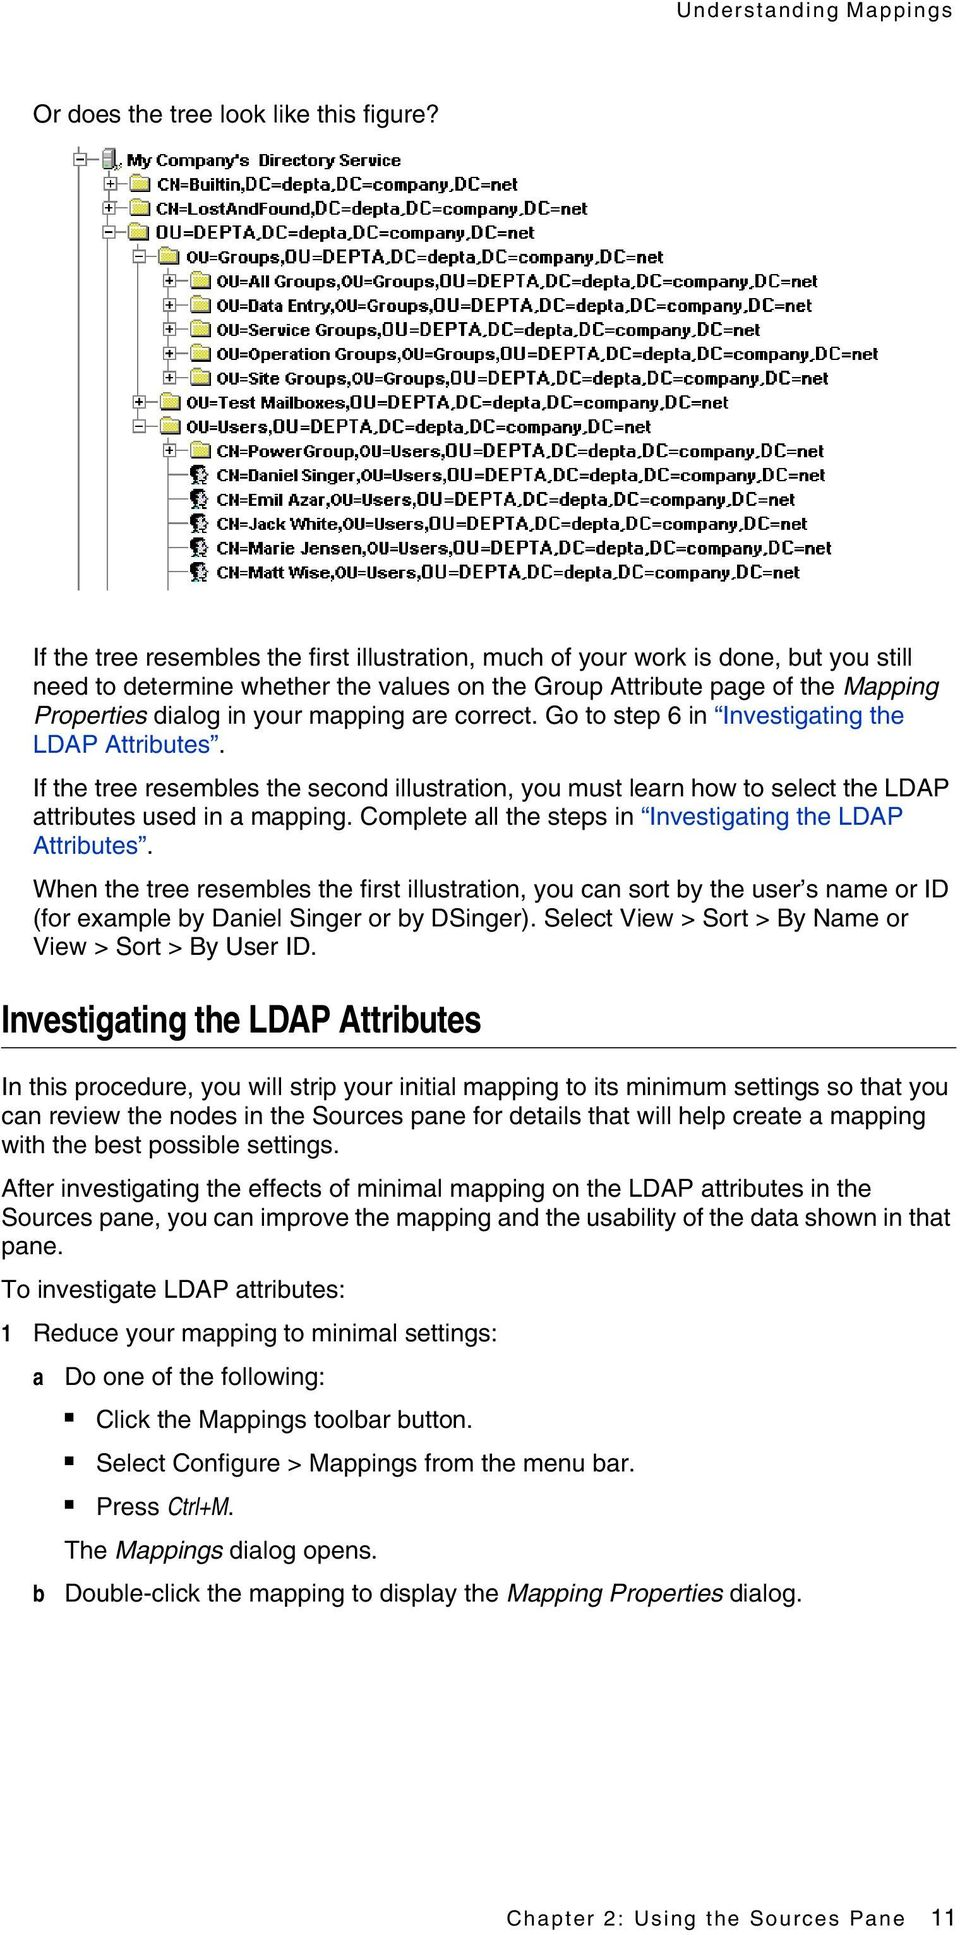 mapping are correct. Go to step 6 in Investigating the LDAP Attributes. If the tree resembles the second illustration, you must learn how to select the LDAP attributes used in a mapping.